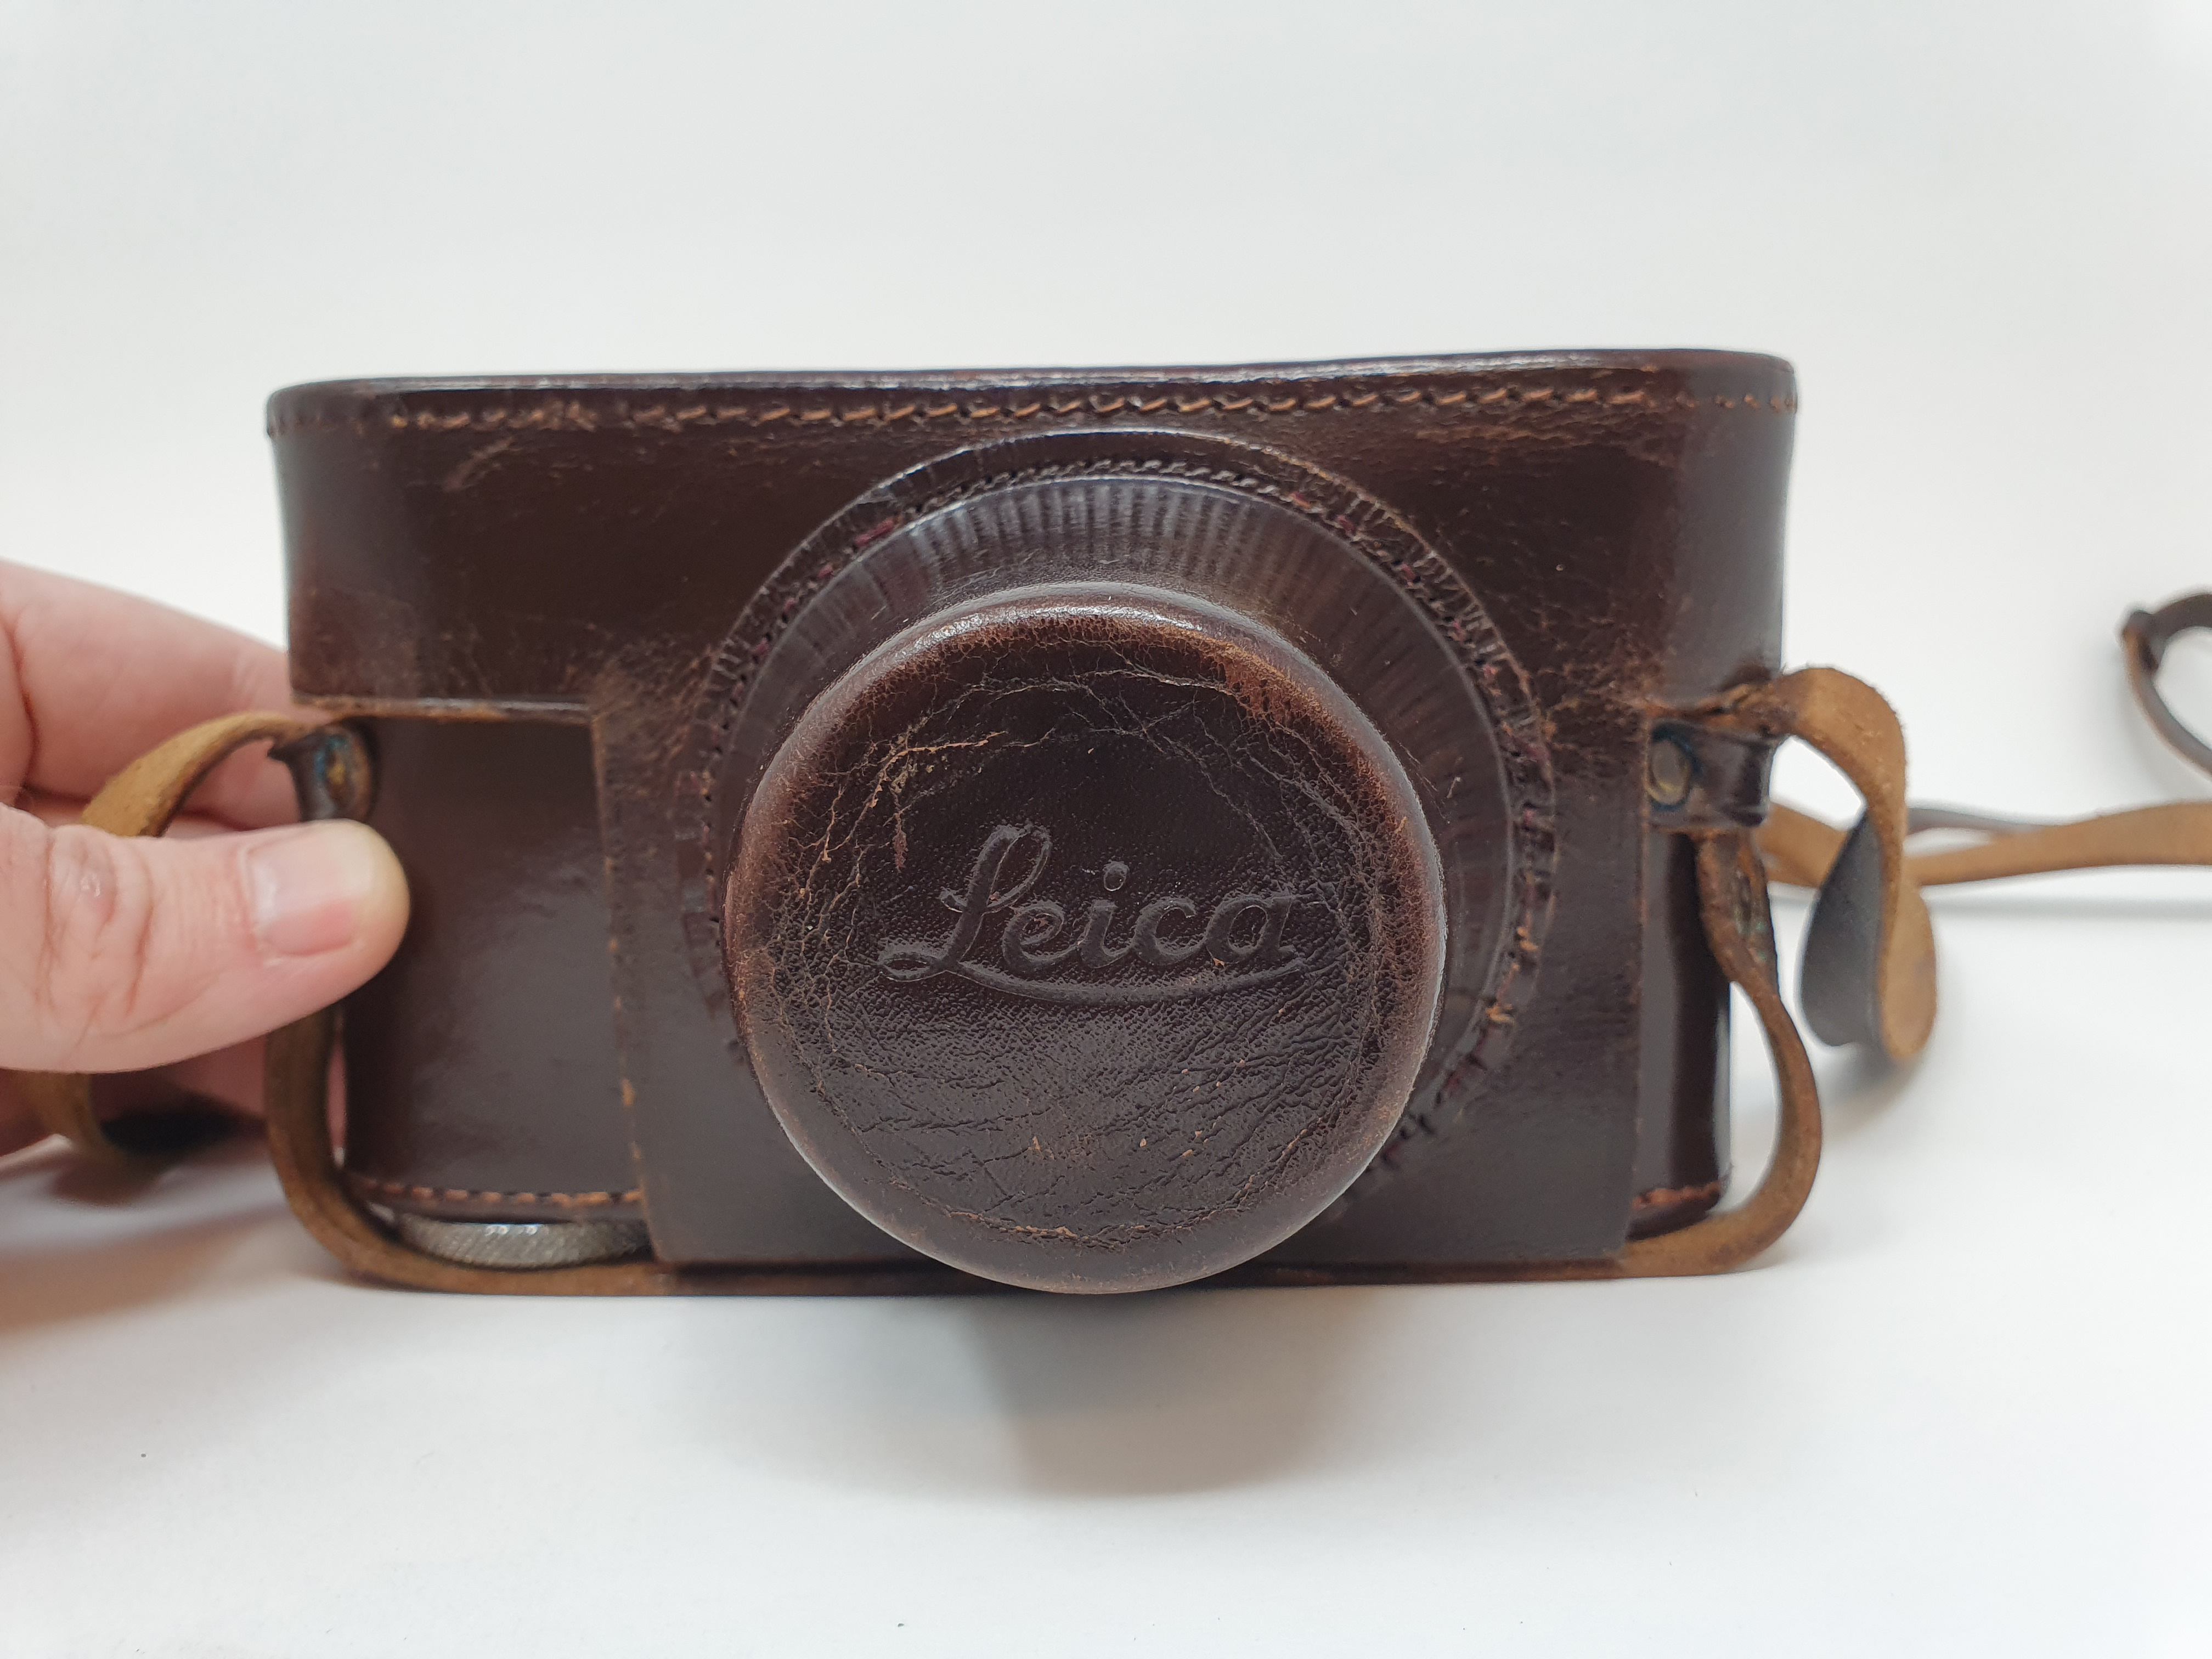 A Leica IIIf camera, serial number 566317, with leather outer case Provenance: Part of a vast single - Image 4 of 4